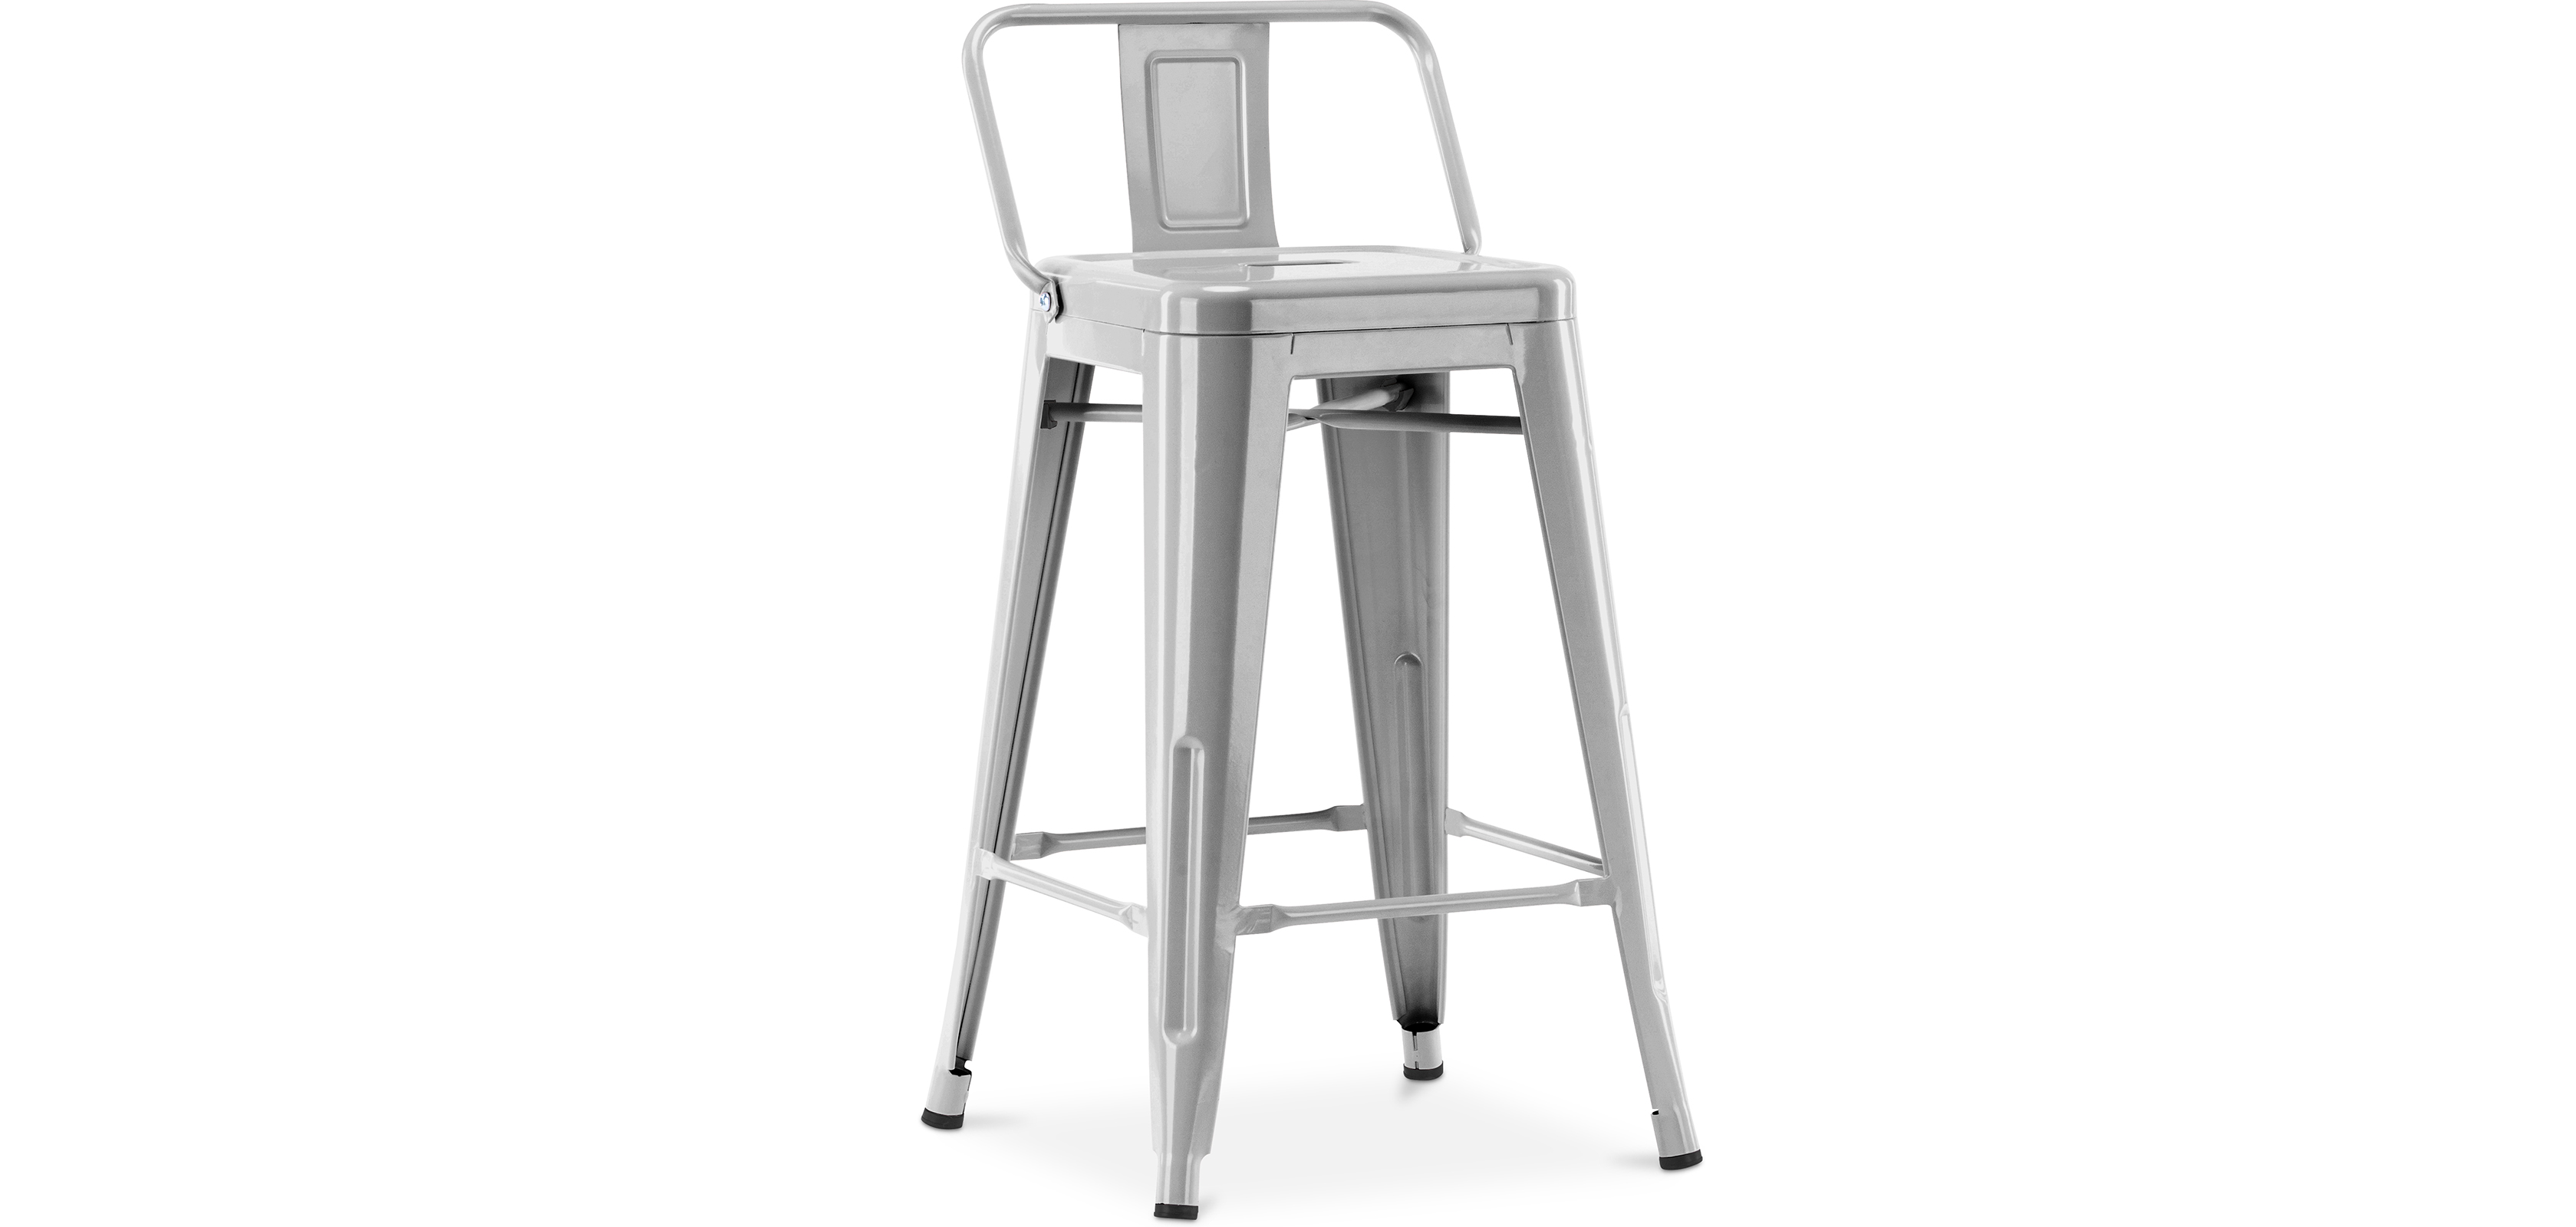 Tolix Stool With Small Backrest Xavier Pauchard Style 60cm